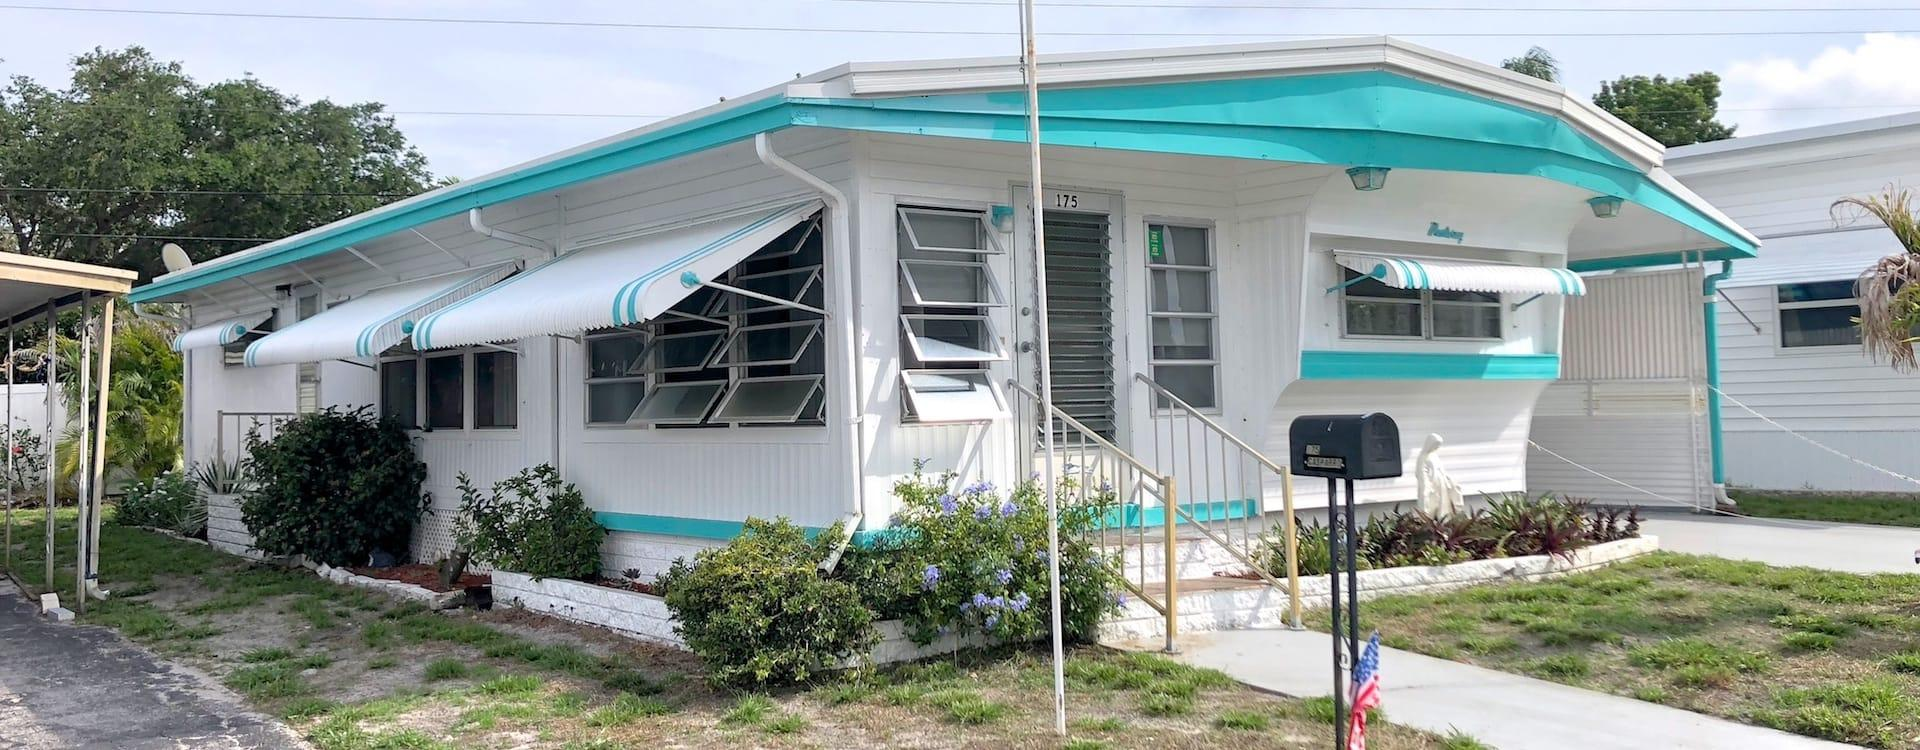 Mobile Home For Sale Clearwater Fl Silk Oak Lodge 175